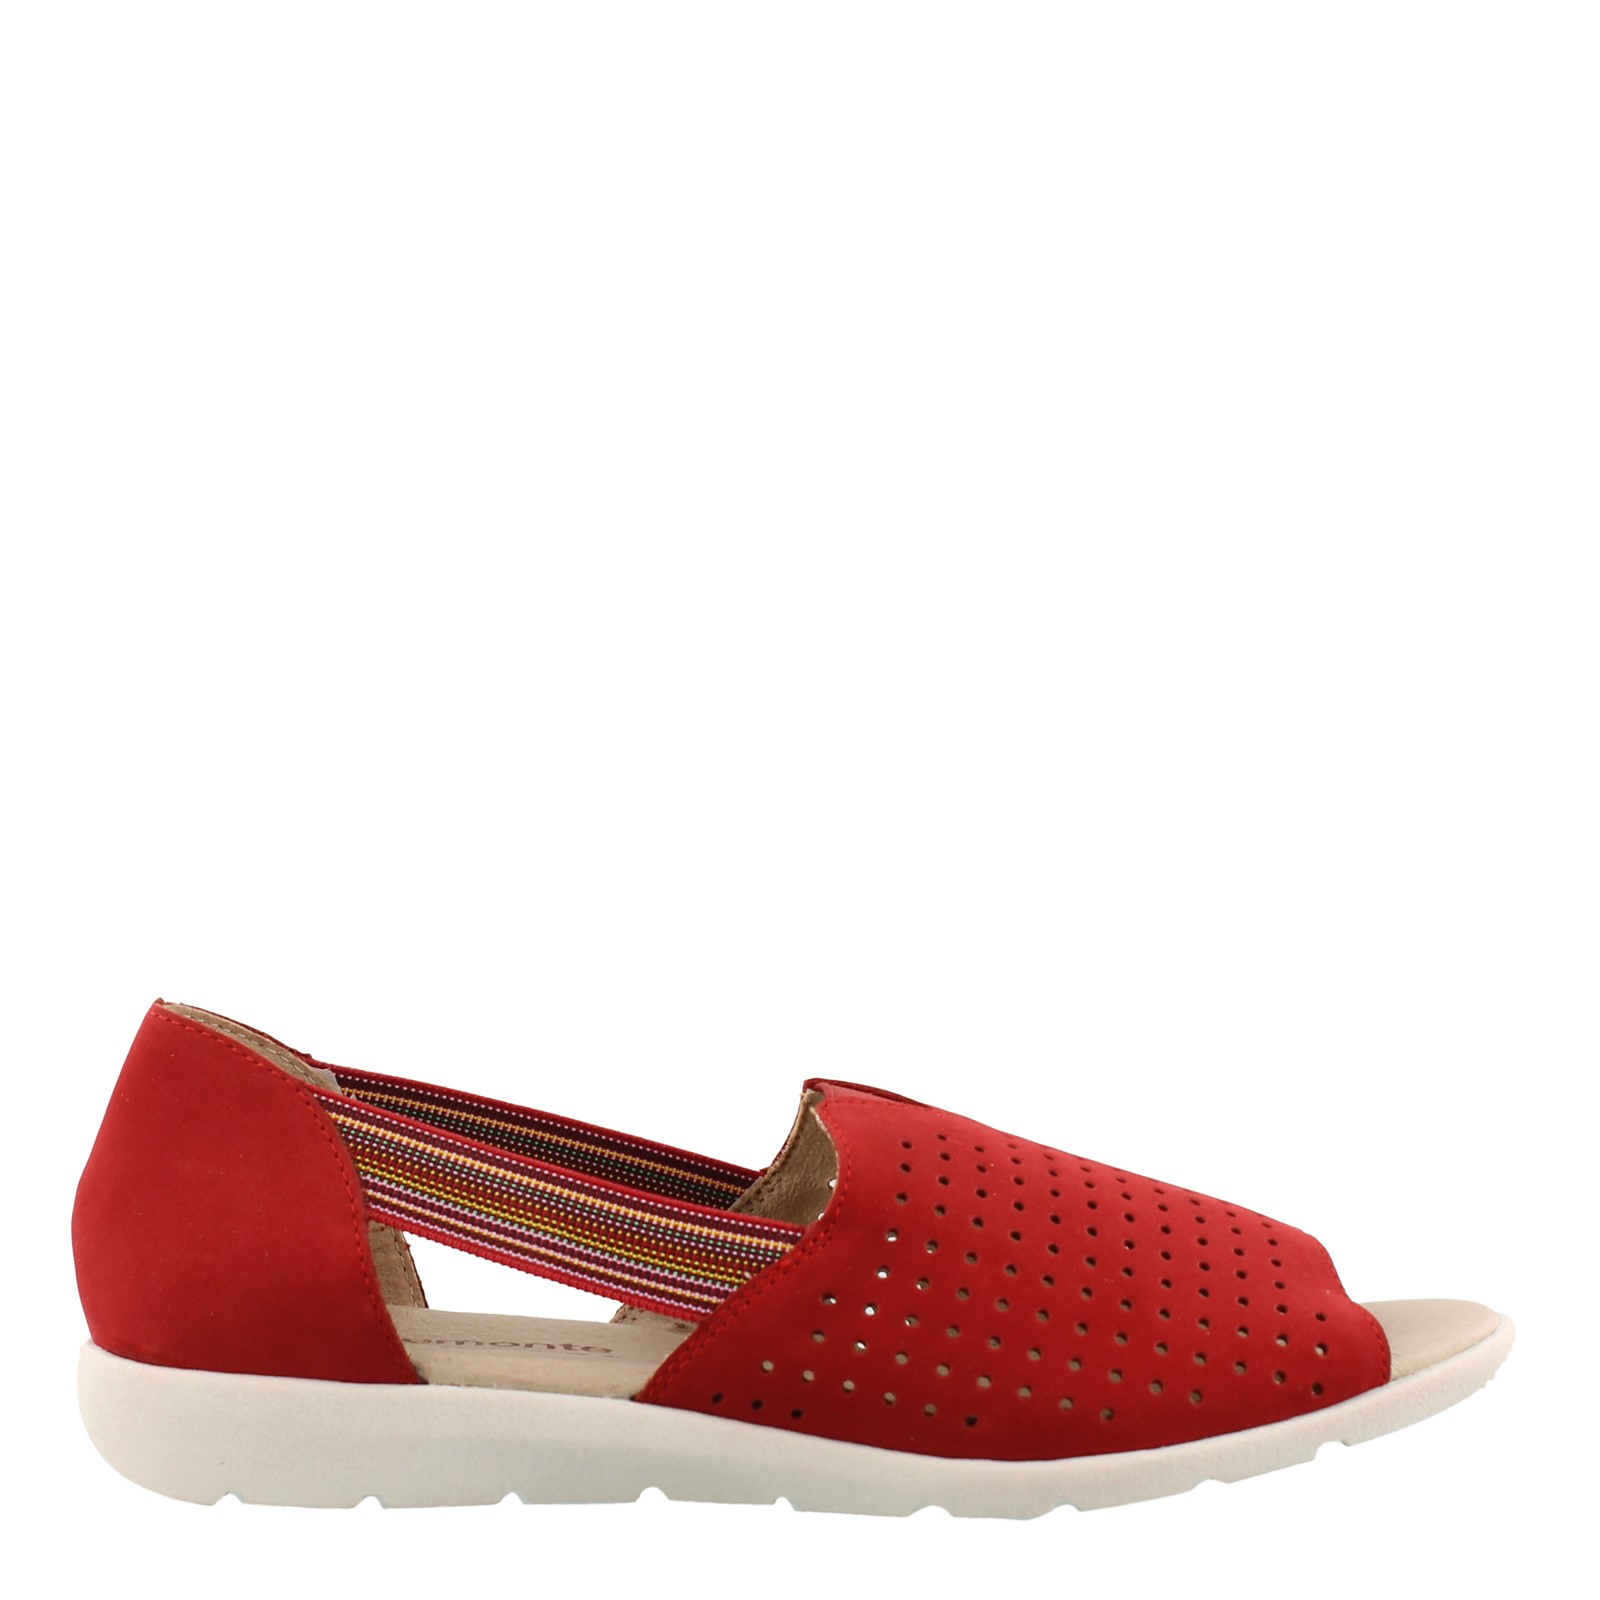 Women's Remonte, D1923 casual slip on